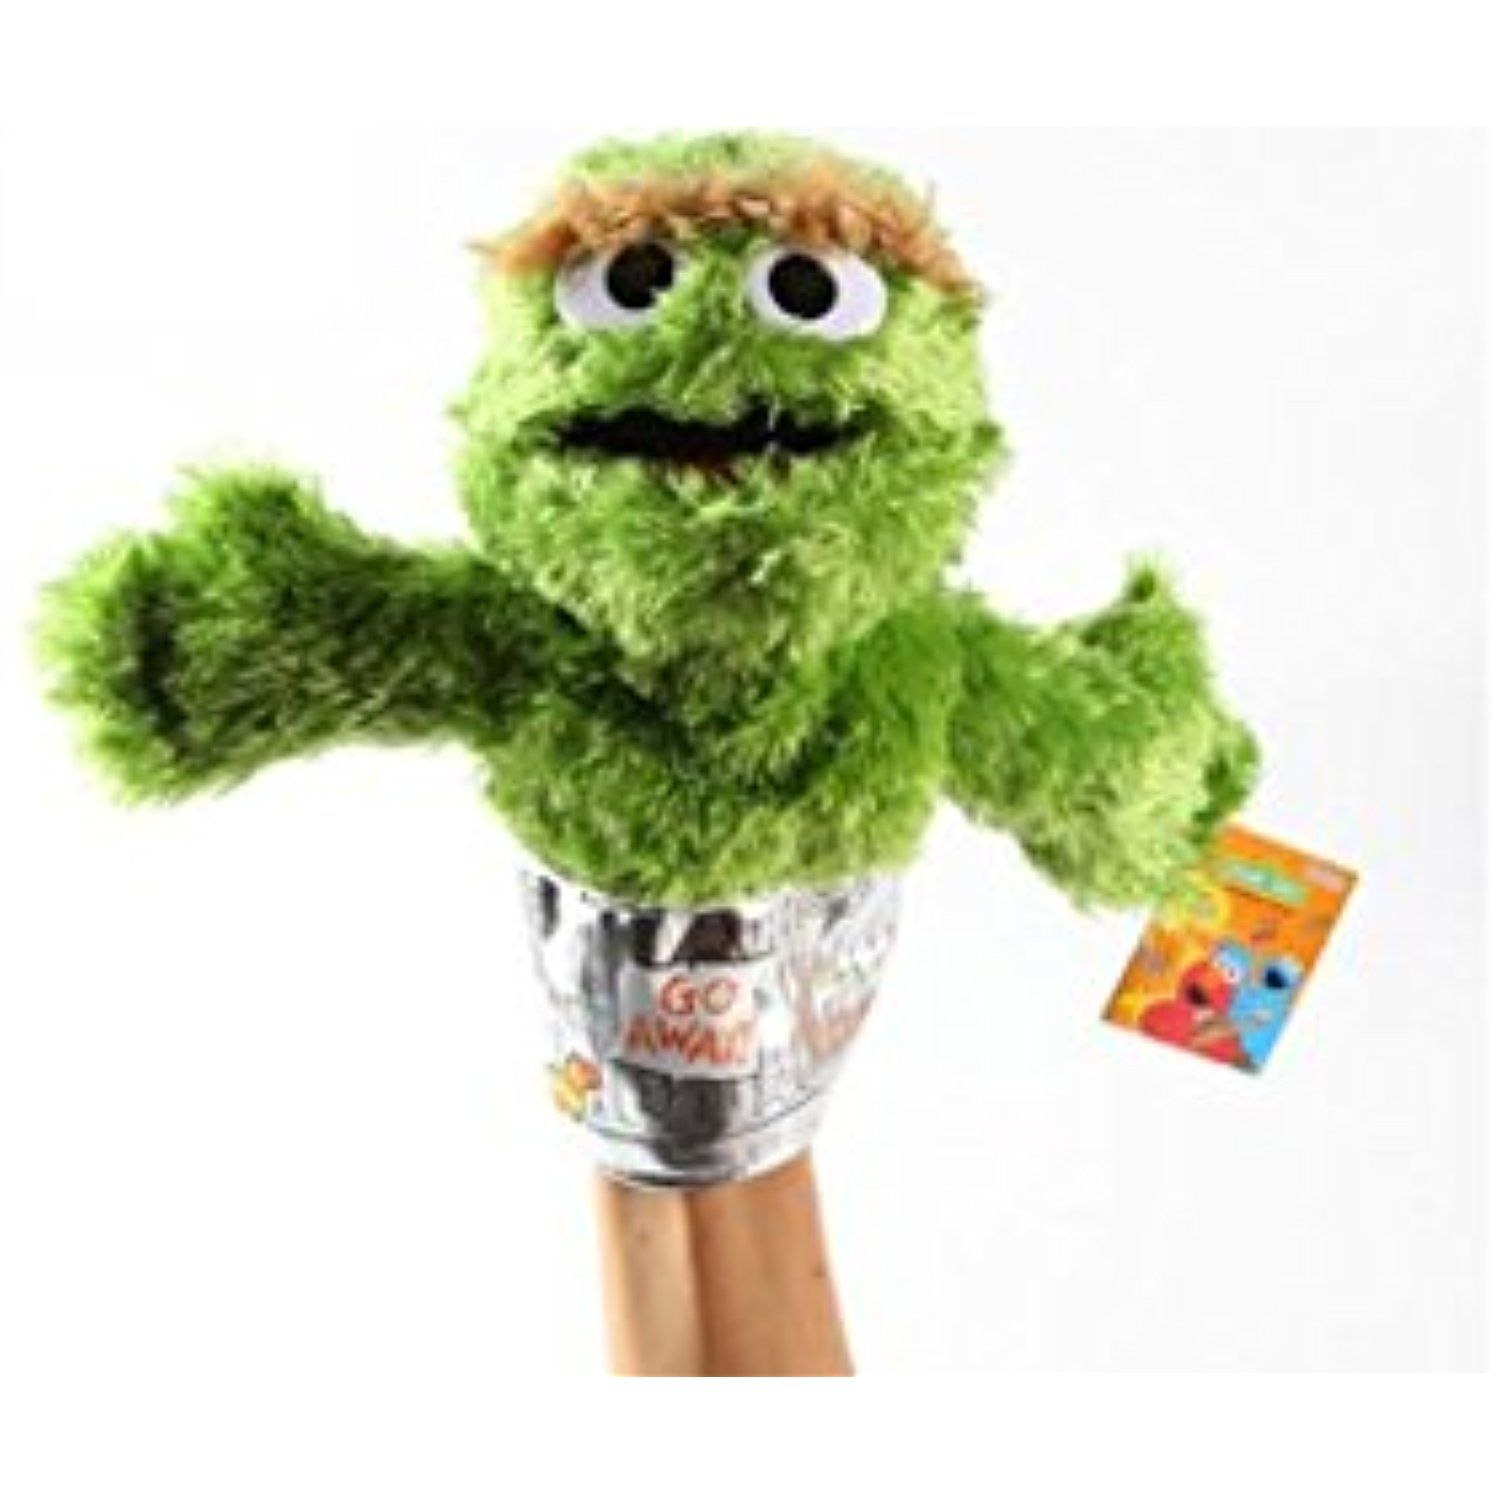 "Sesame Street Oscar Grouch Plush Puppet 9"" ** To view"